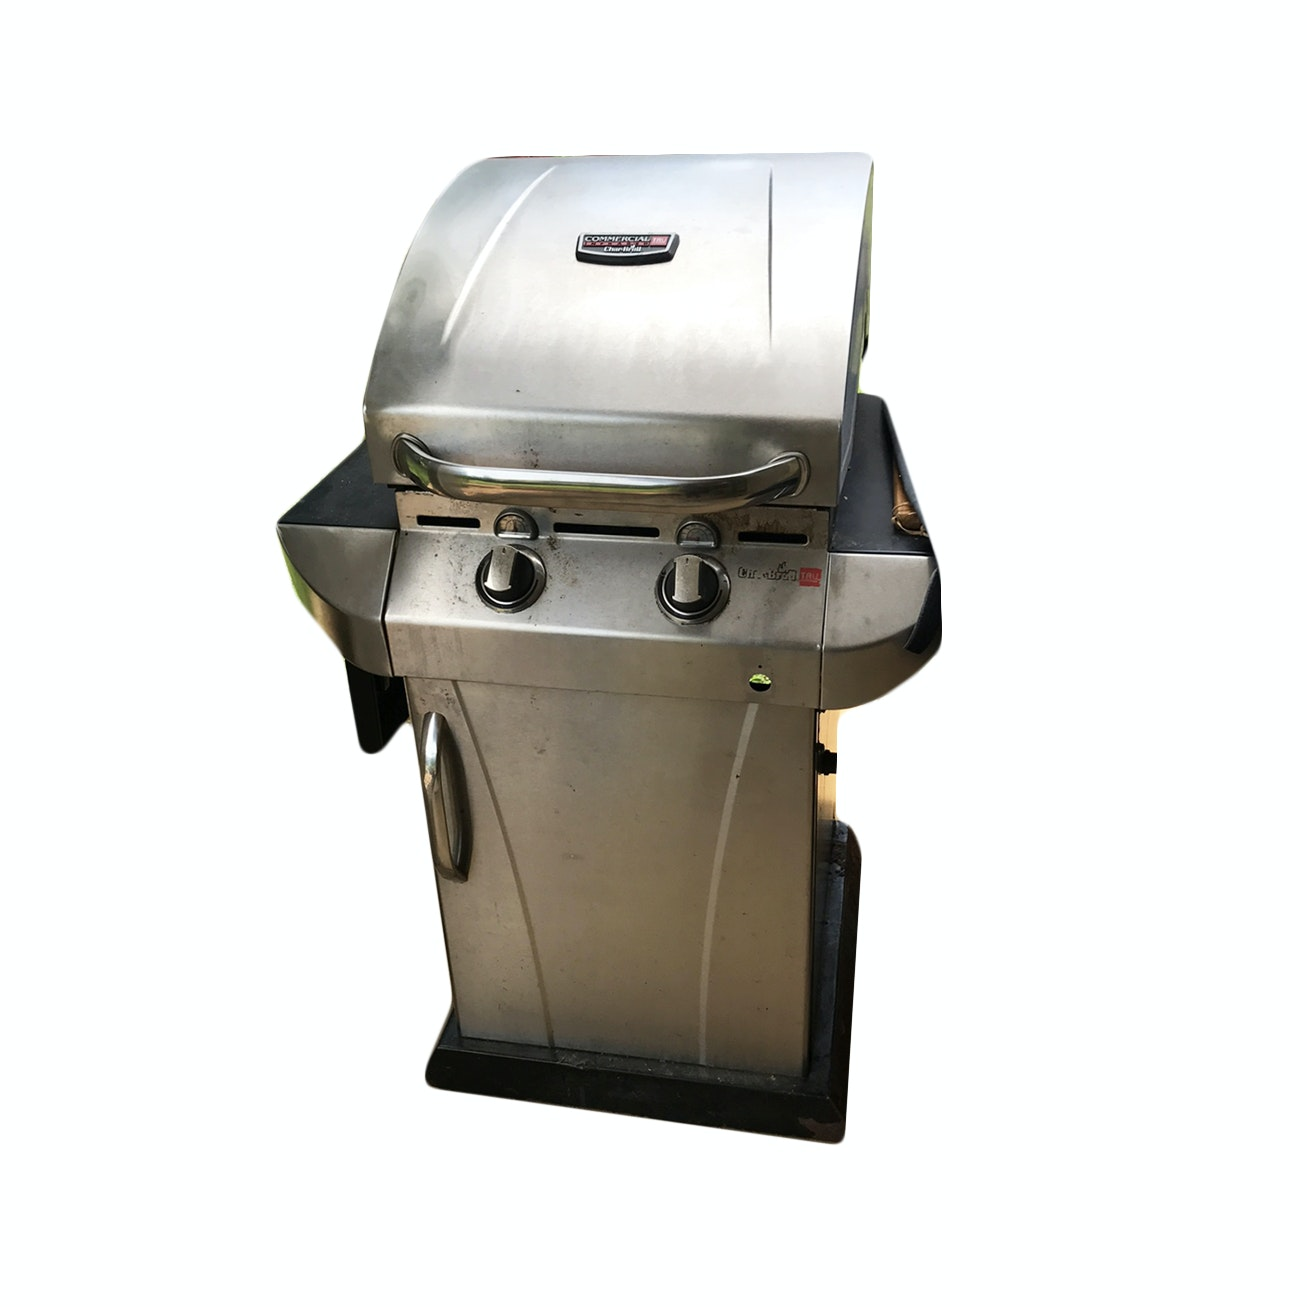 Stainless Steel Commercial Infrared Char-Broil Grill